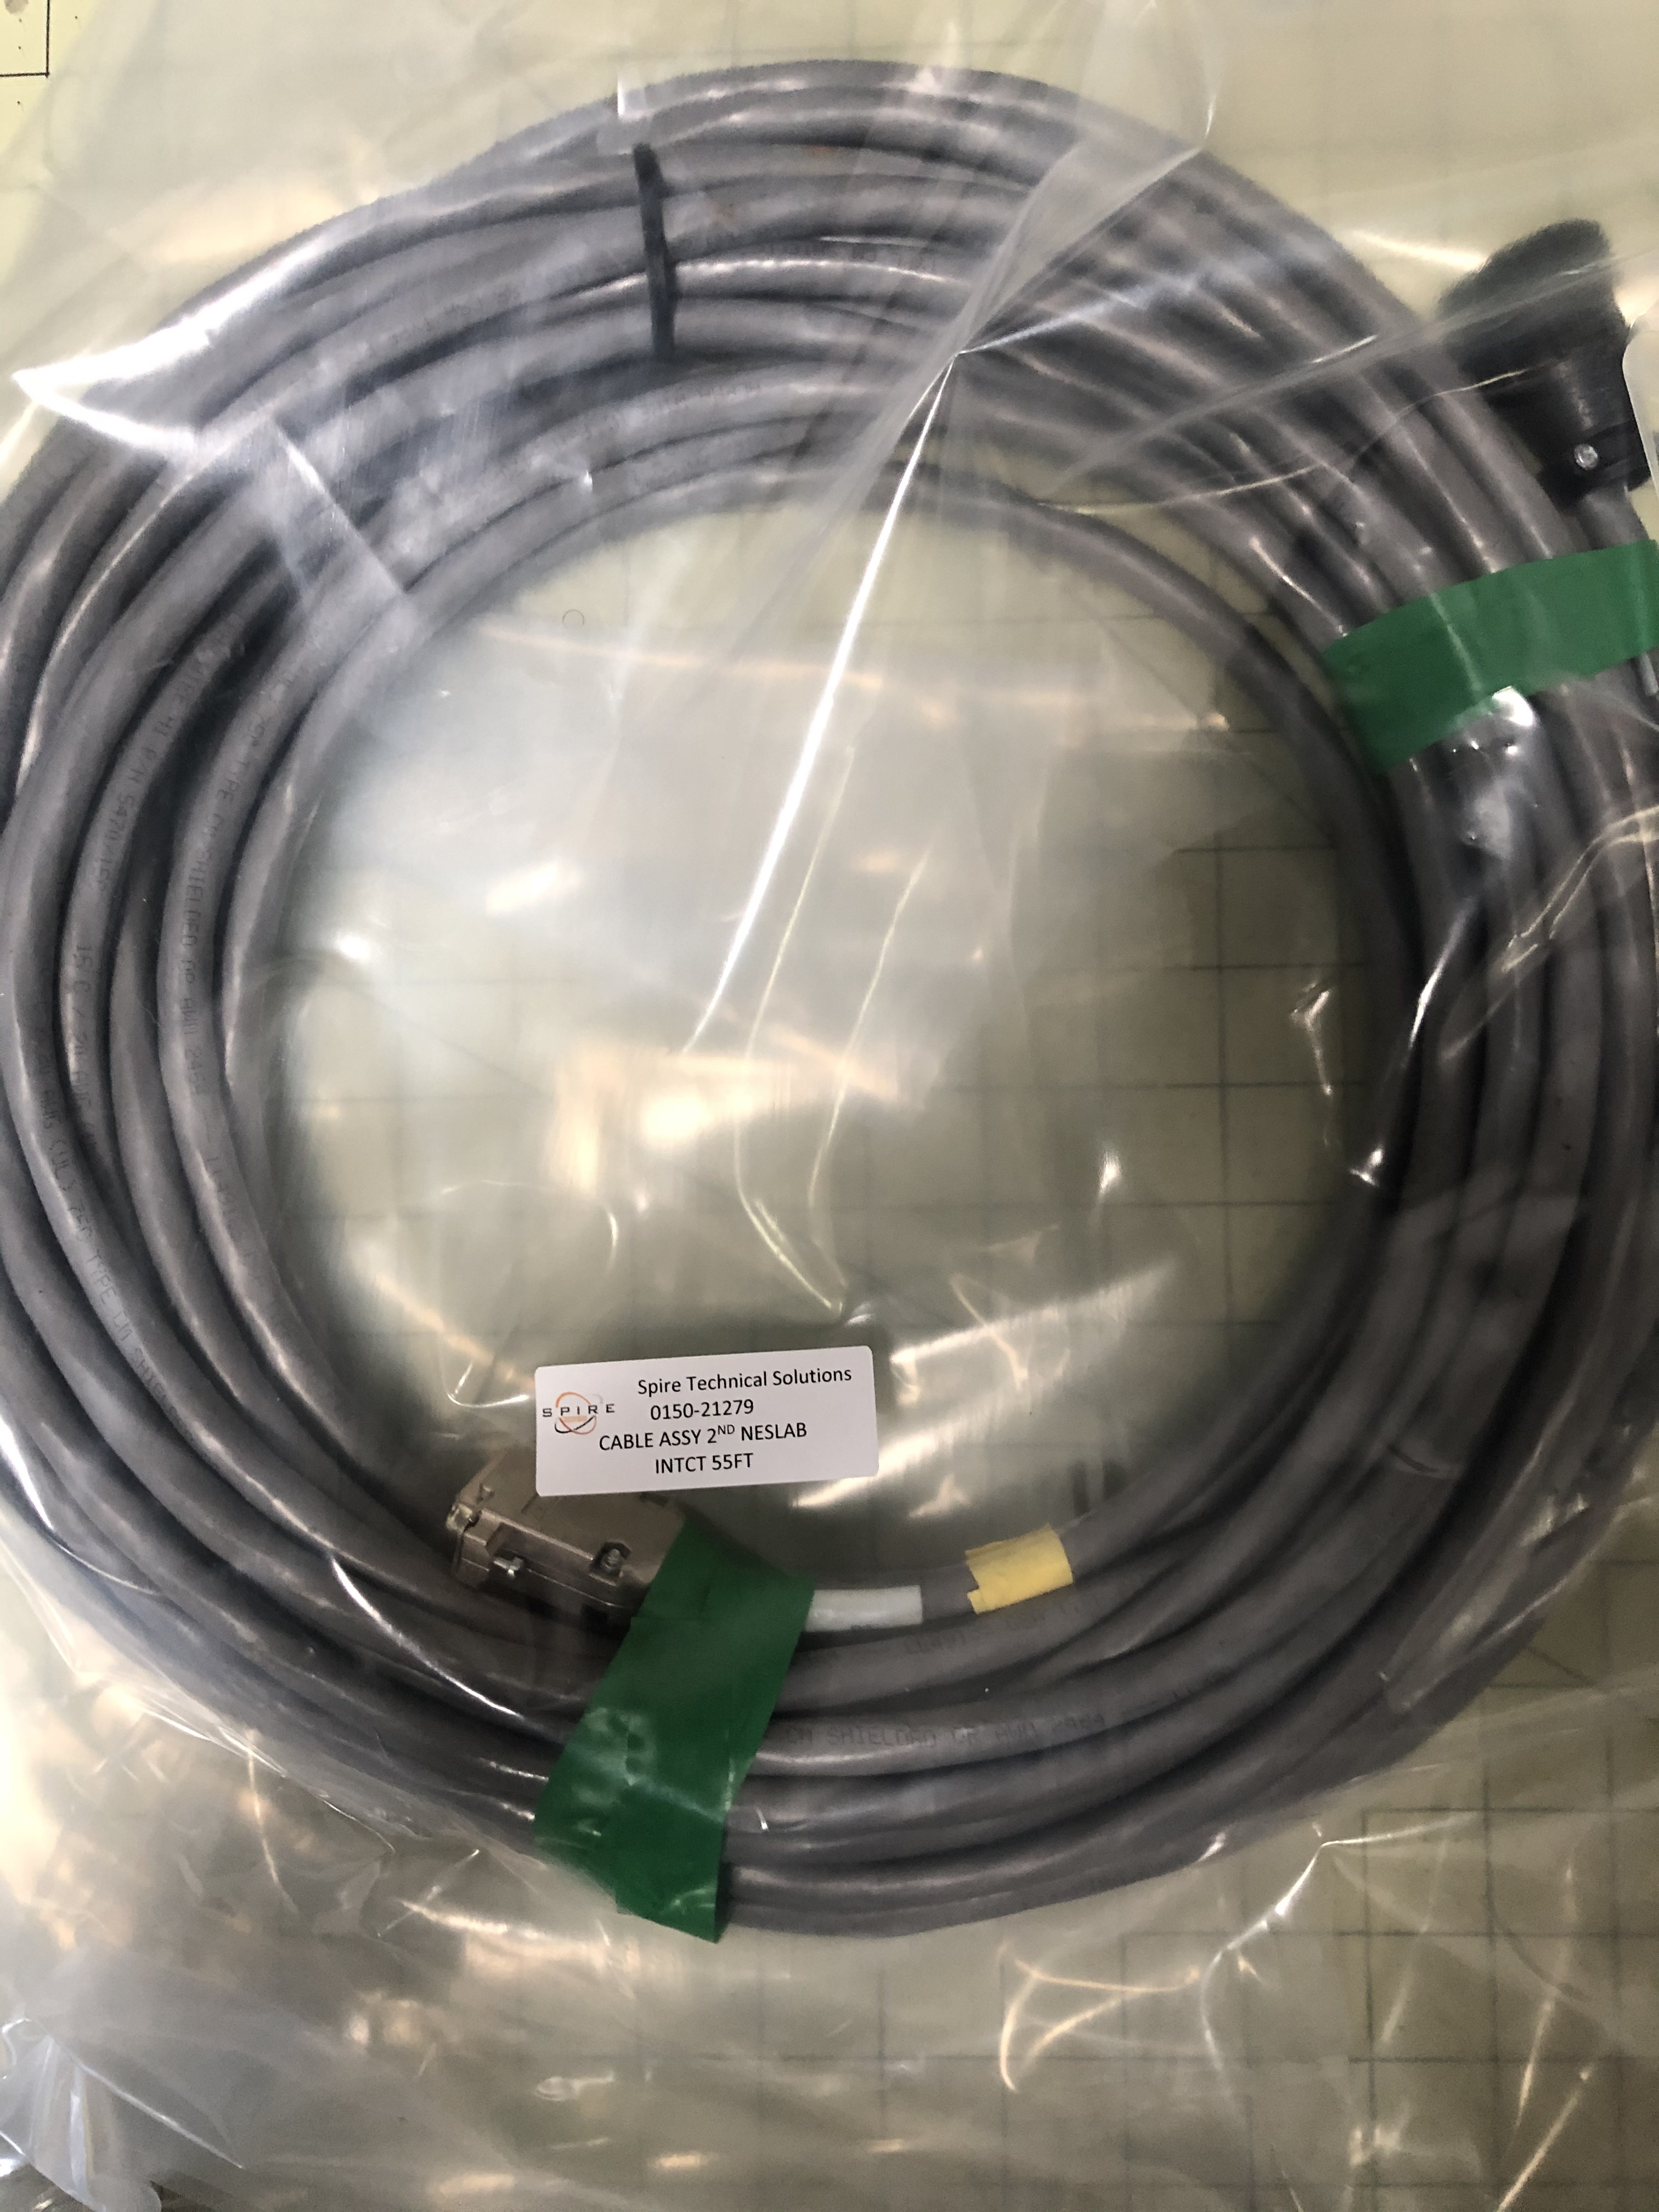 CABLE ASSY 2ND NESLAB INTCT 55FT